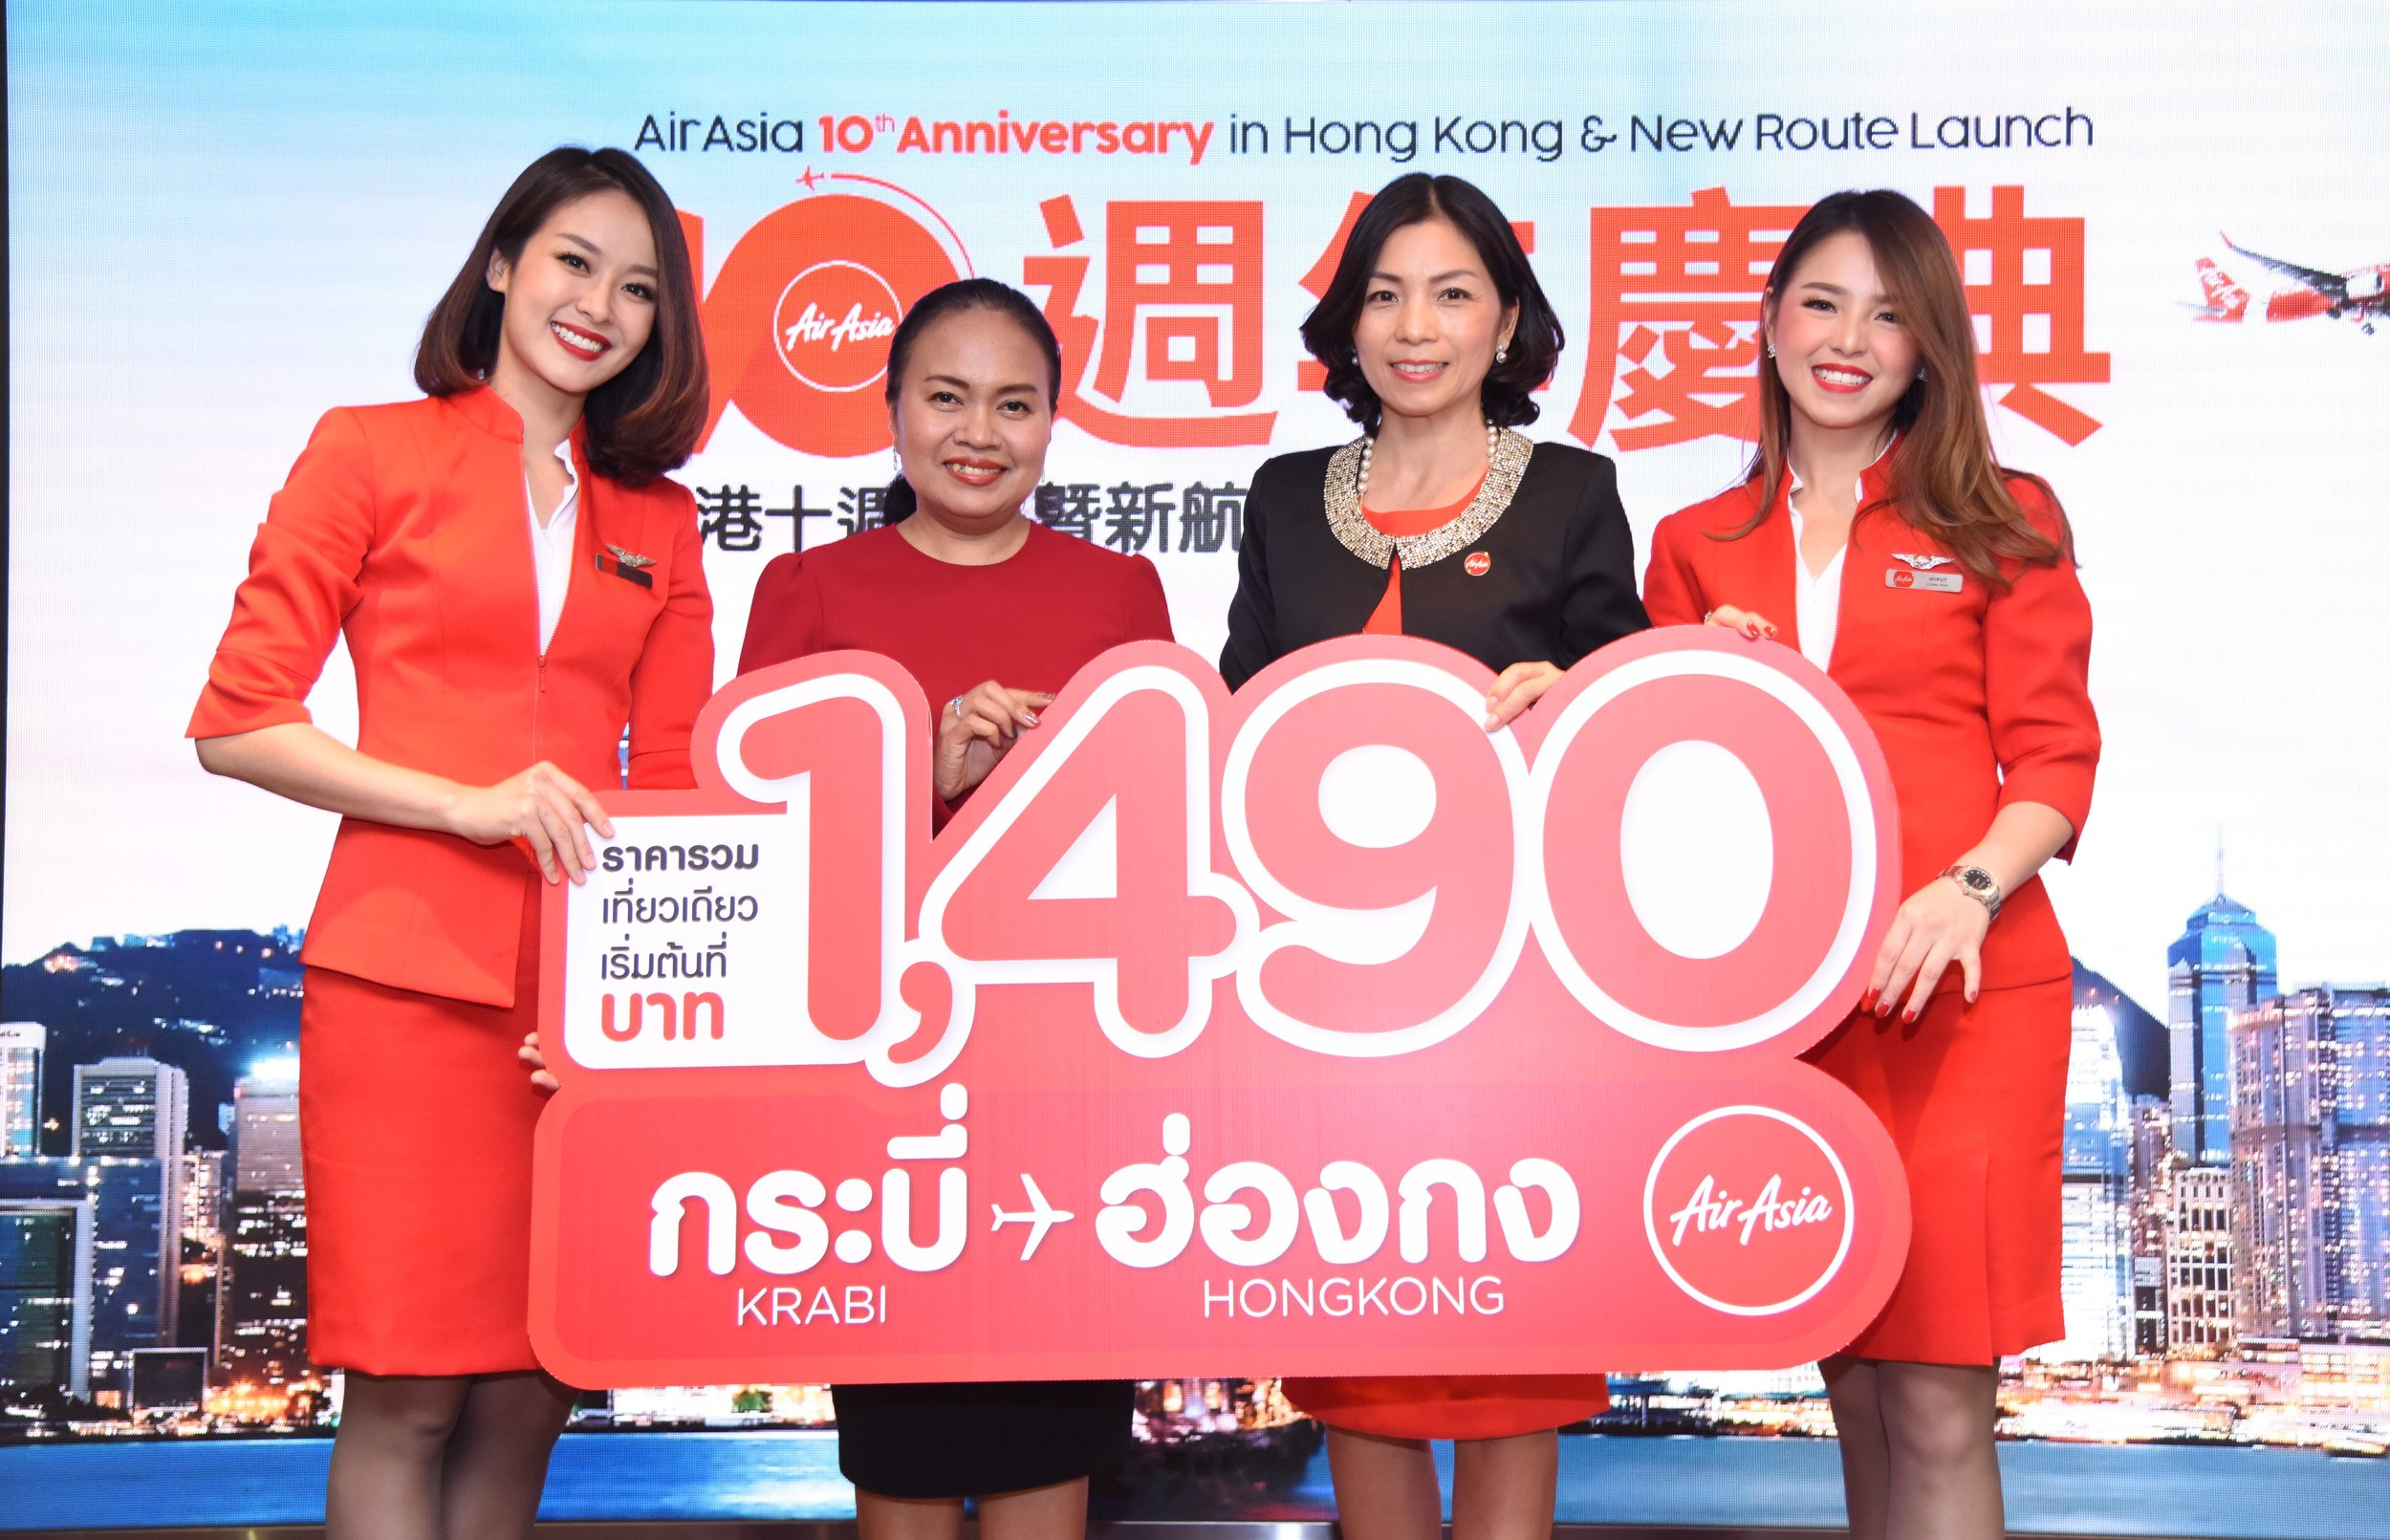 Ms. Celia Lao, CEO of AirAisa Hong Kong and Macao (2nd from the right); and Ms. Sarima Chindamat, Director of Tourism Authority of Thailand Hong Kong Office (2nd from the left), joined the celebratory event to launch the Krabi-Hong Kong and Krabi-Macau routes in Hong Kong.